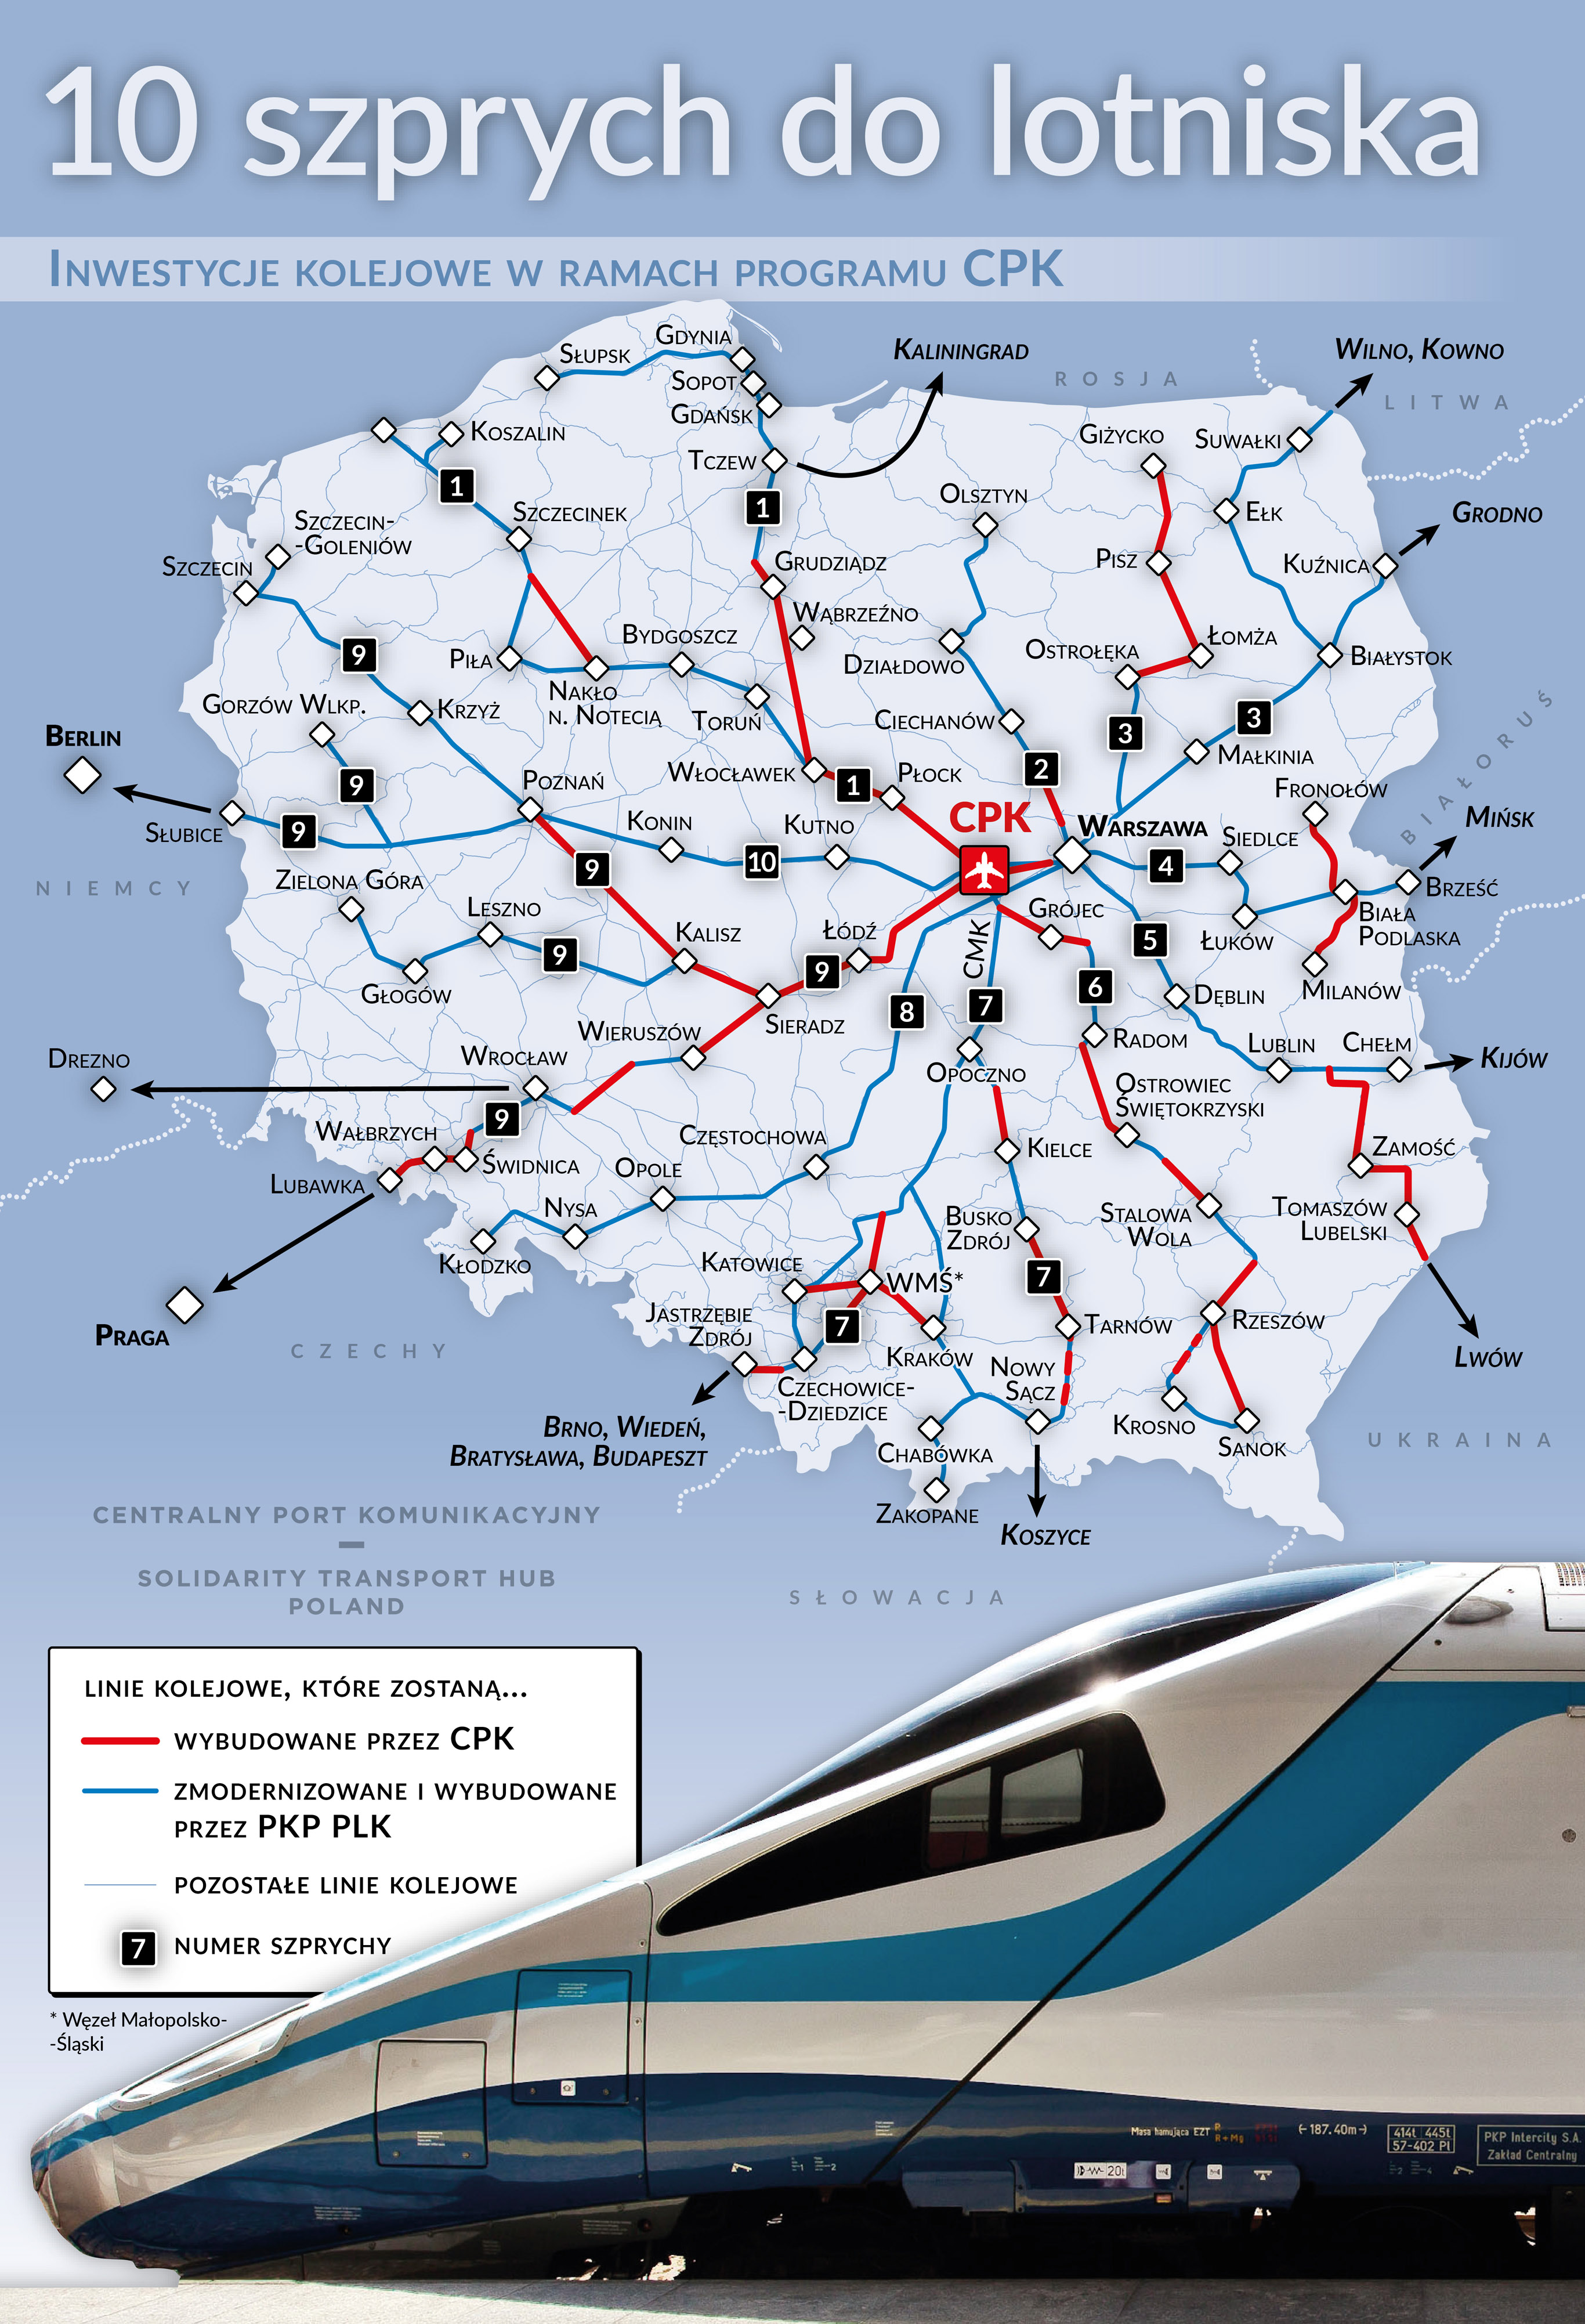 HOW ARE THE MAIN ROADS OF RAIL CONNECTIONS TO STH